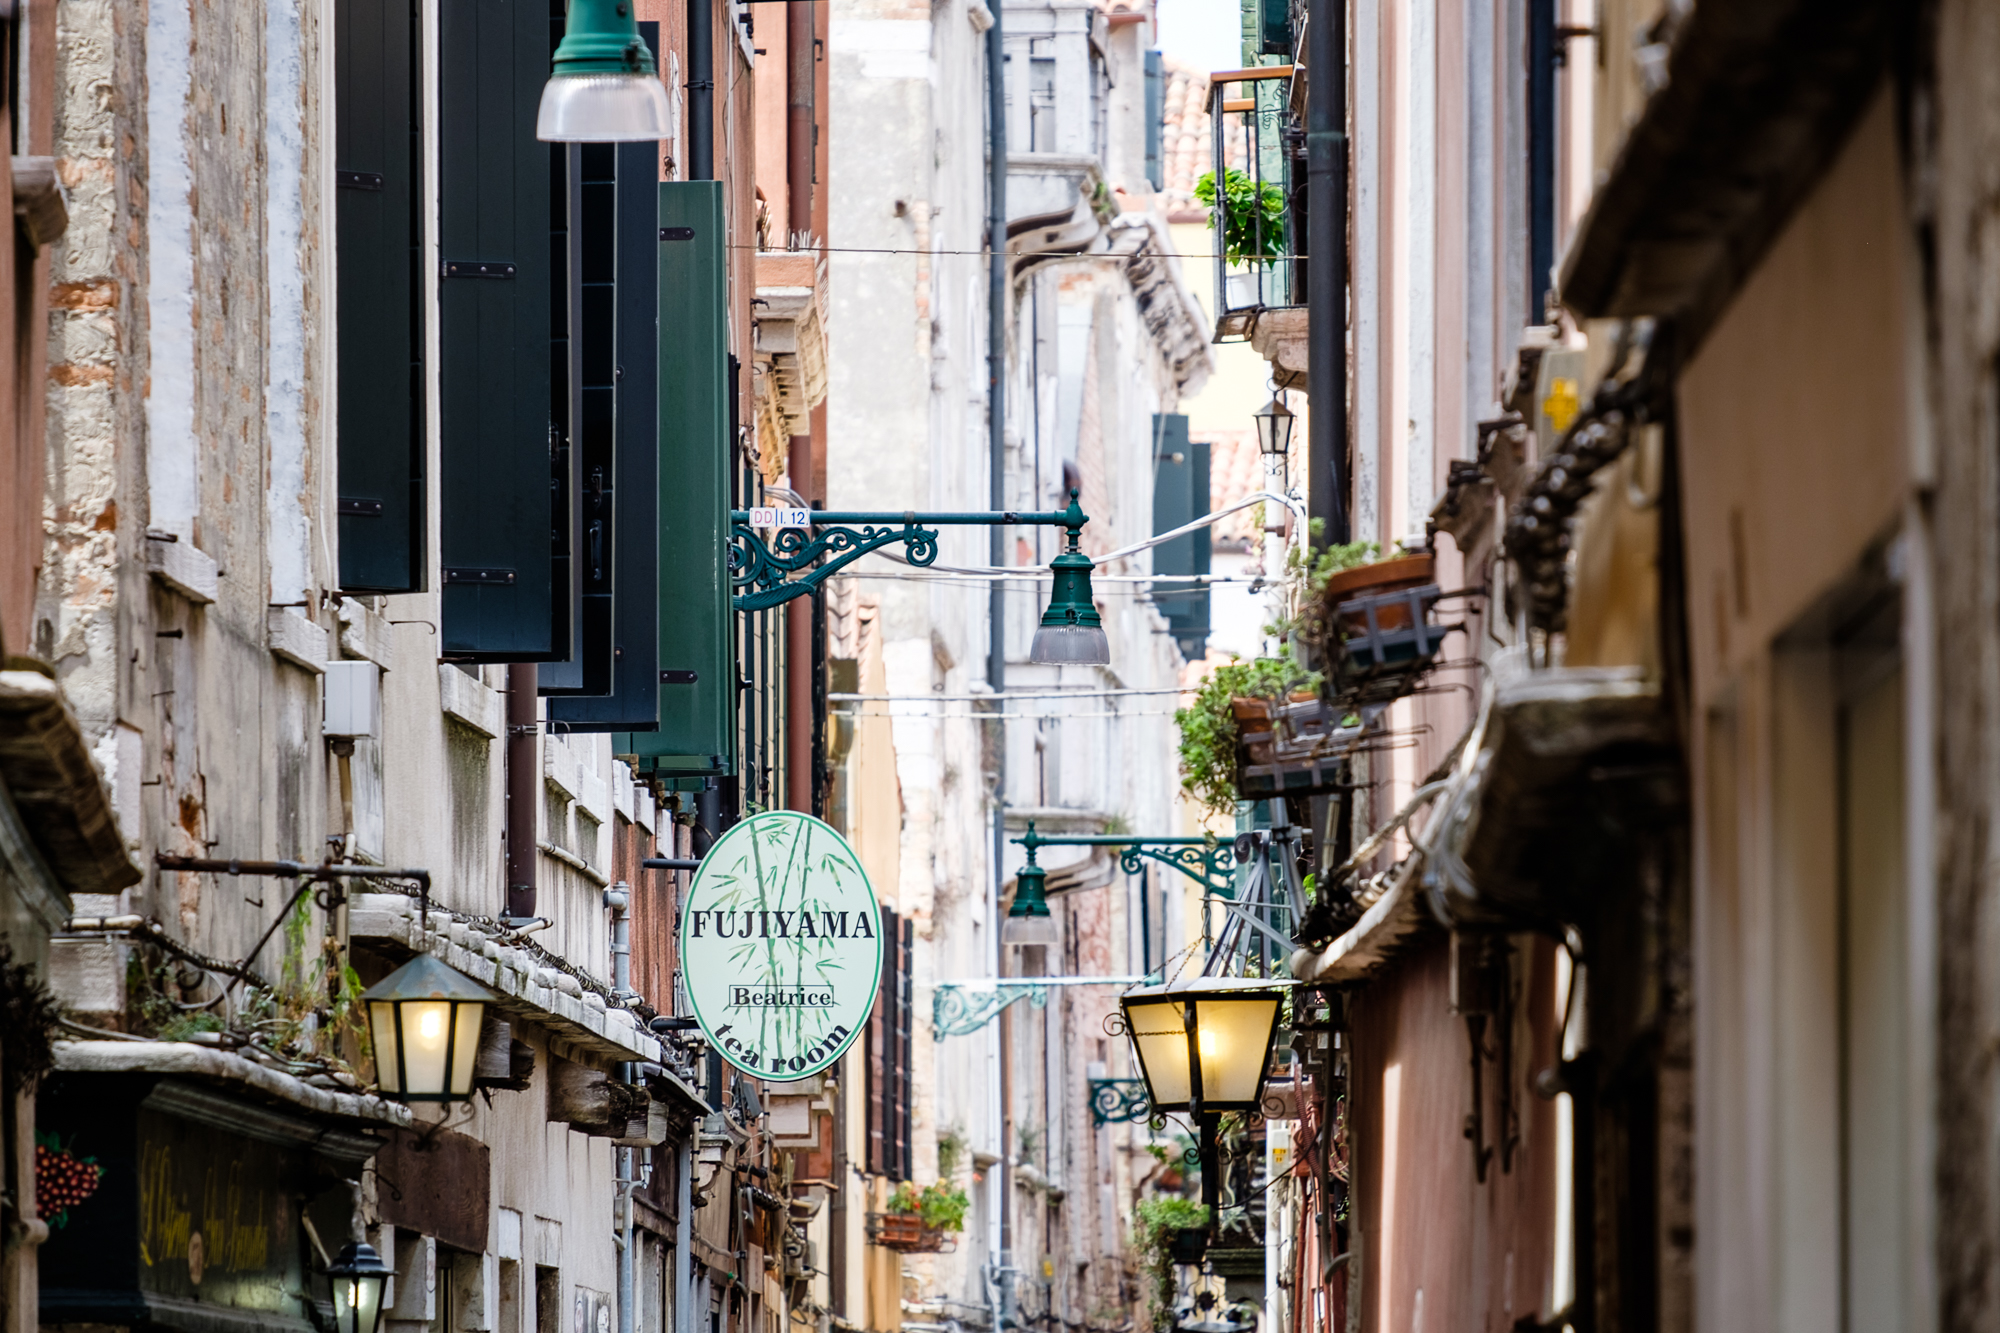 A photo of the narrow streets of Venice taken by Trevor Sherwin